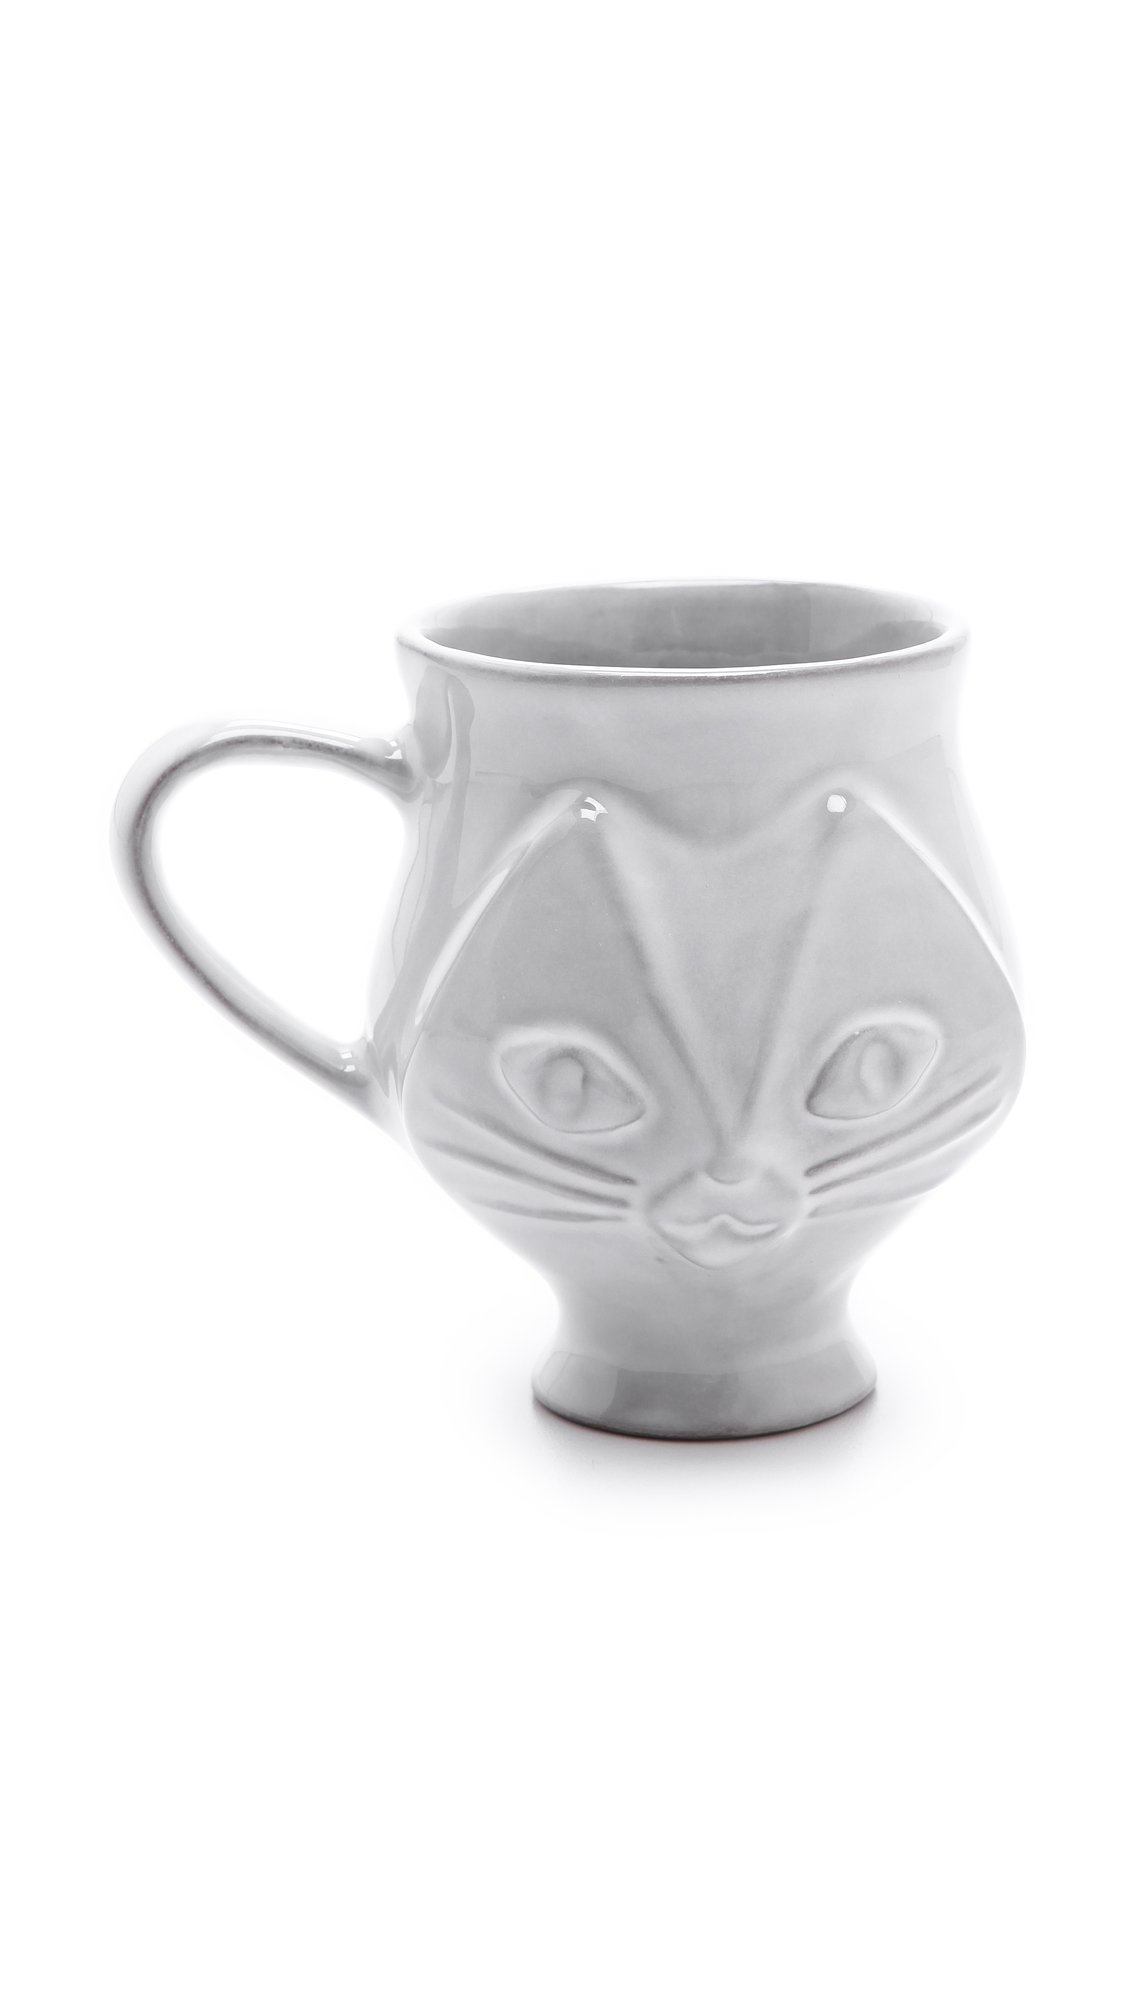 Jonathan Adler Utopia Cat Mug - White